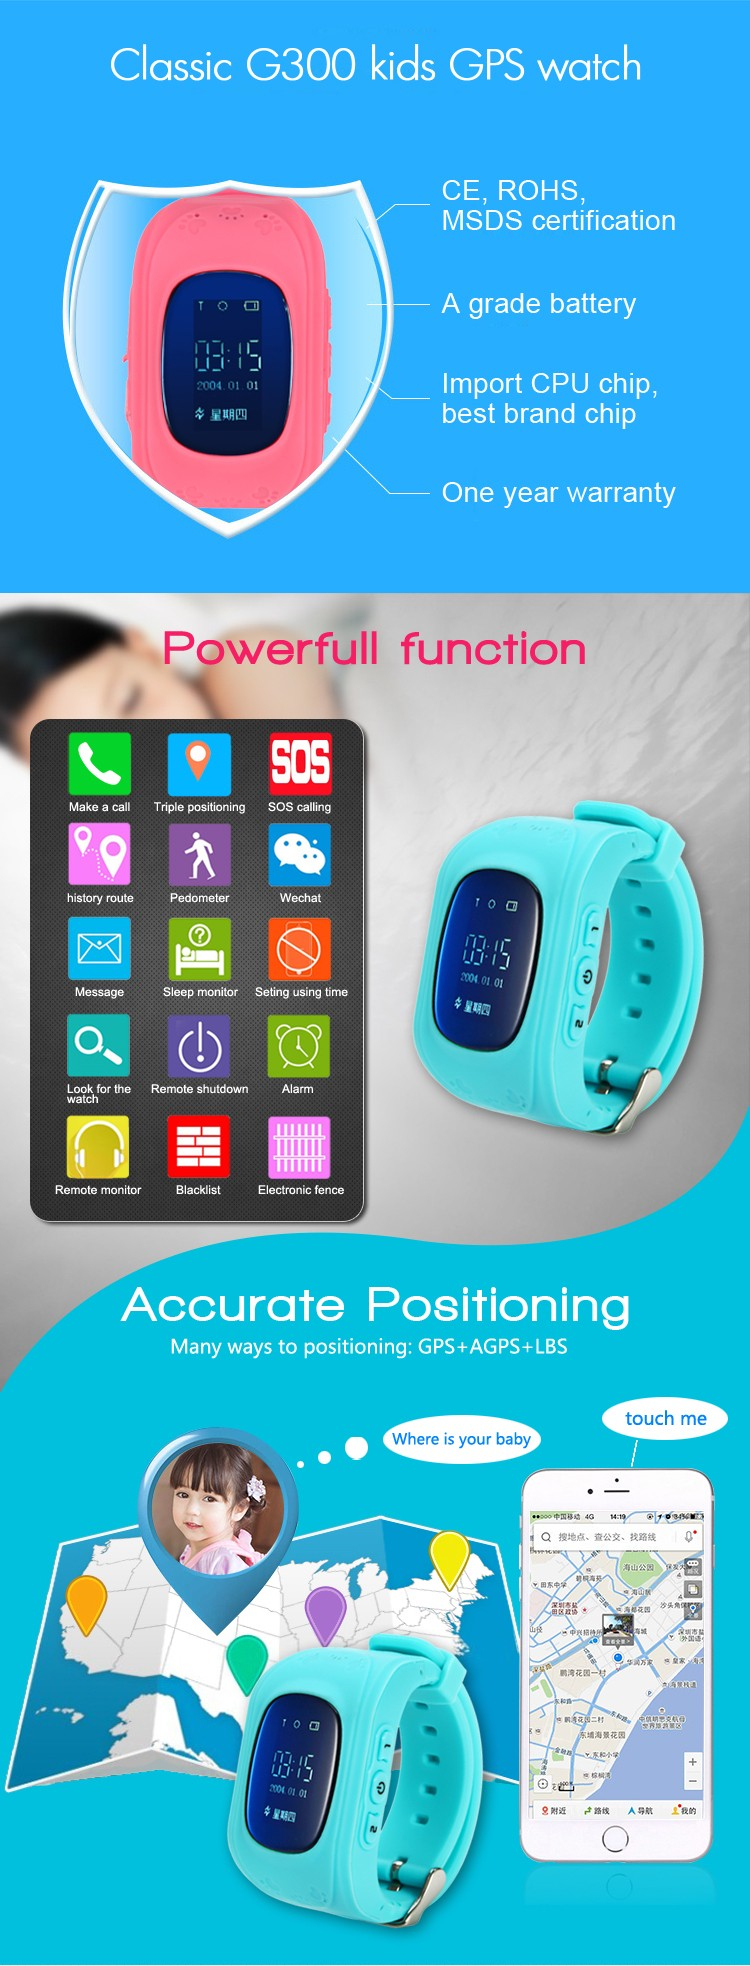 History Route Gps Tracking Smart Watch For Kids Made In China ...